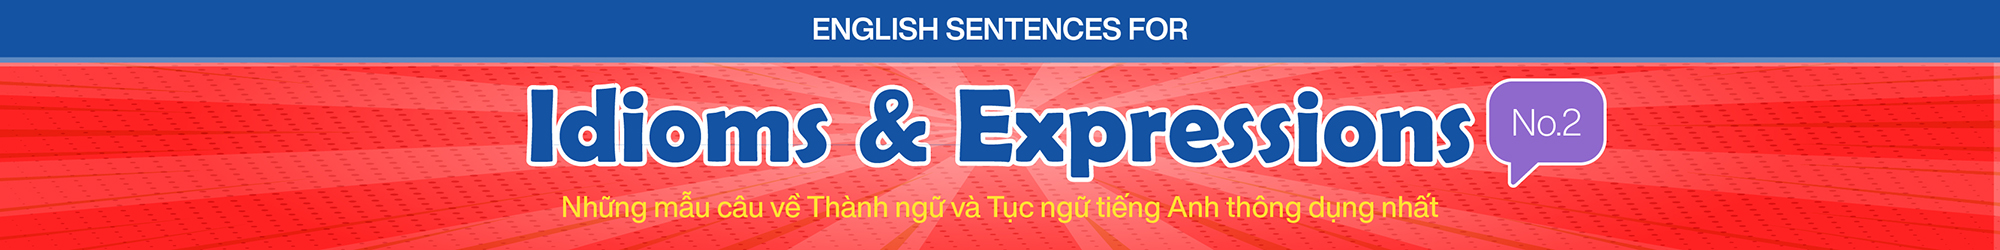 English Sentences for Idioms and Expressions (No.2) banner